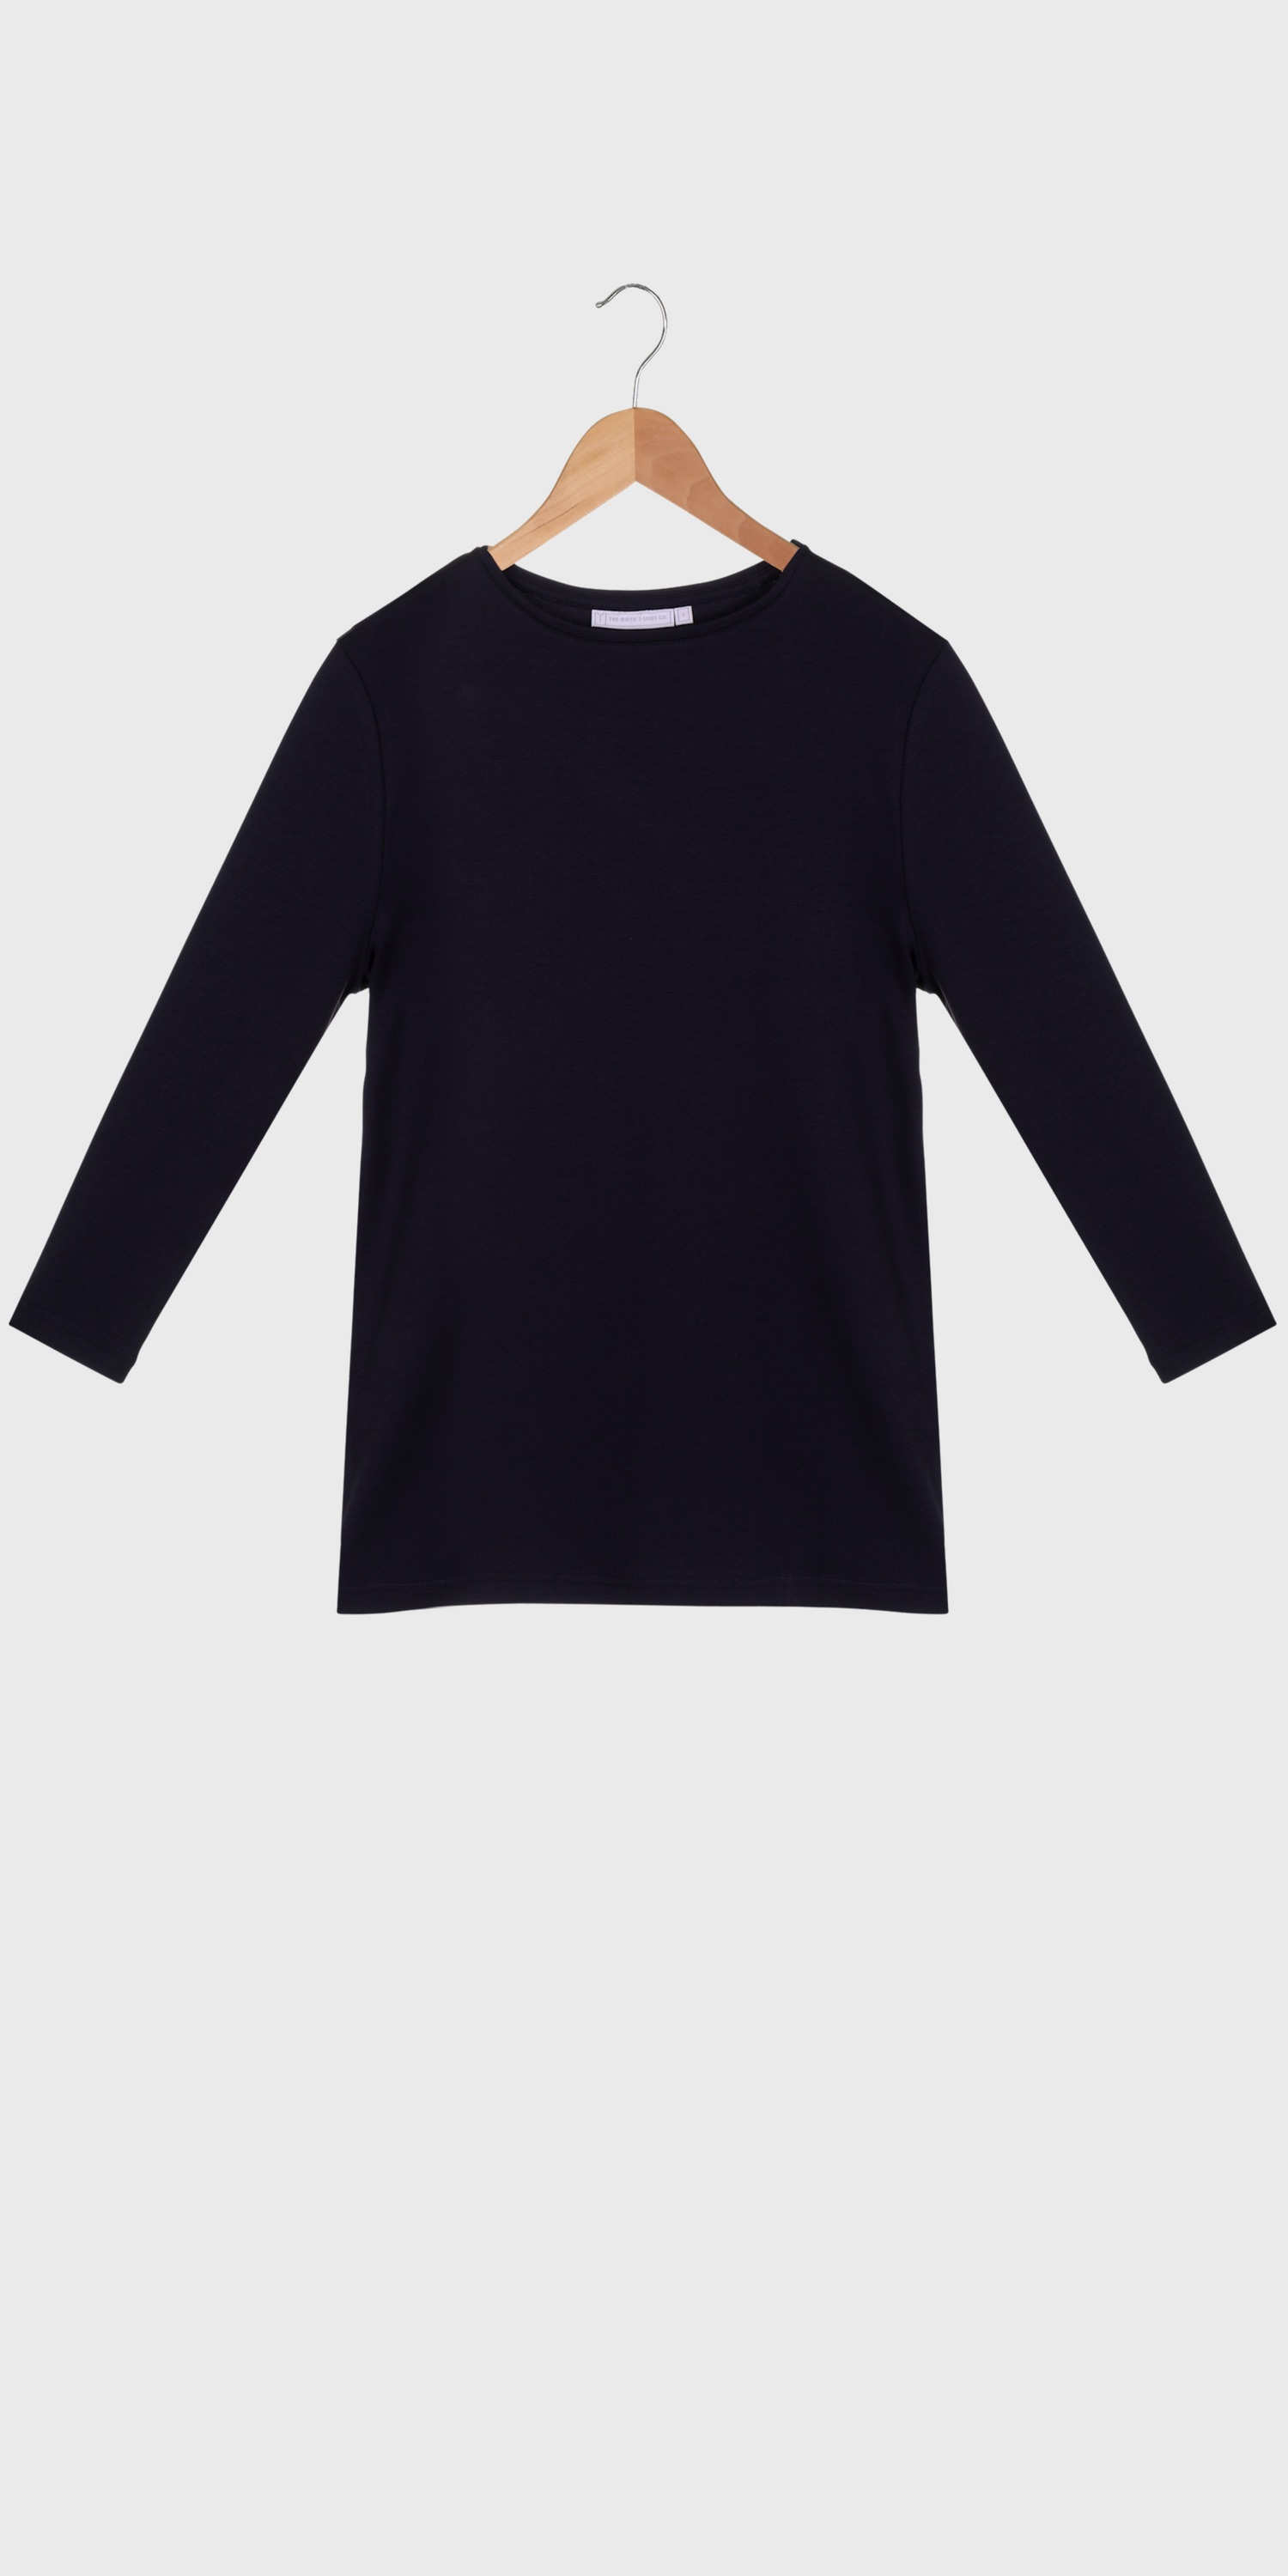 the-white-t-shirt-co-navy-breton